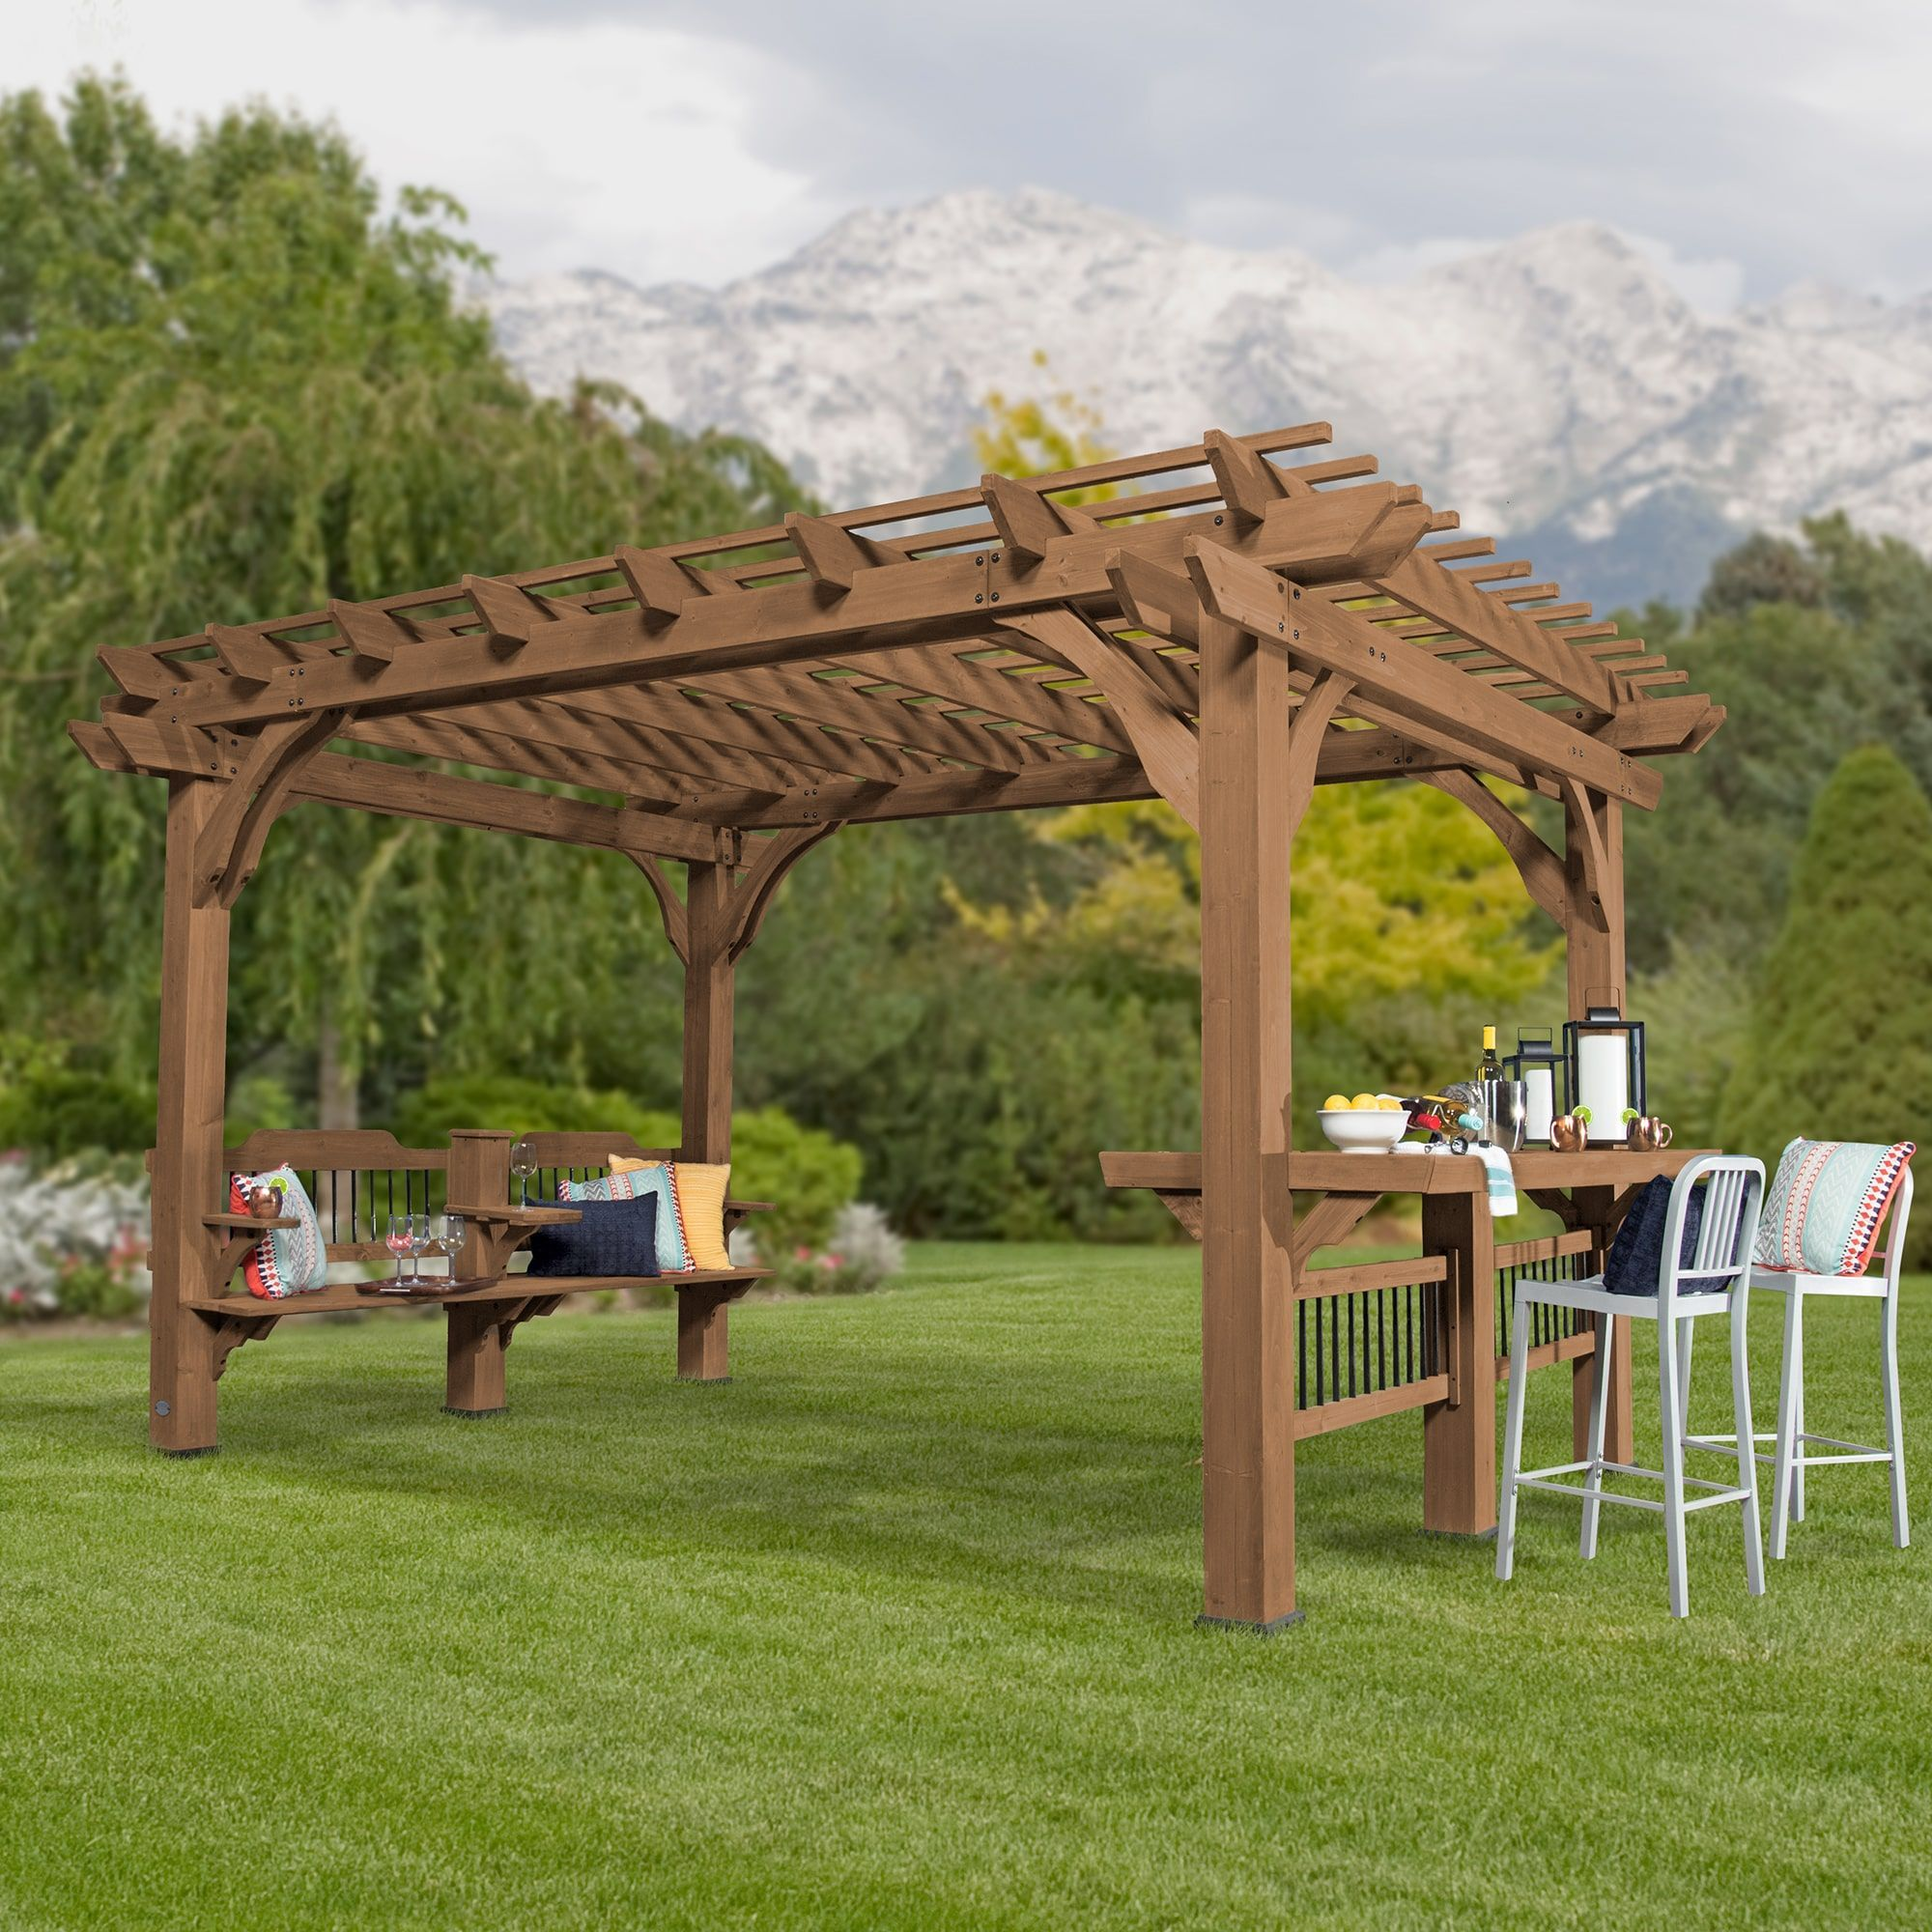 10 Ways To Create A Backyard Oasis: Backyard Discovery 14 X 10 Oasis Pergola